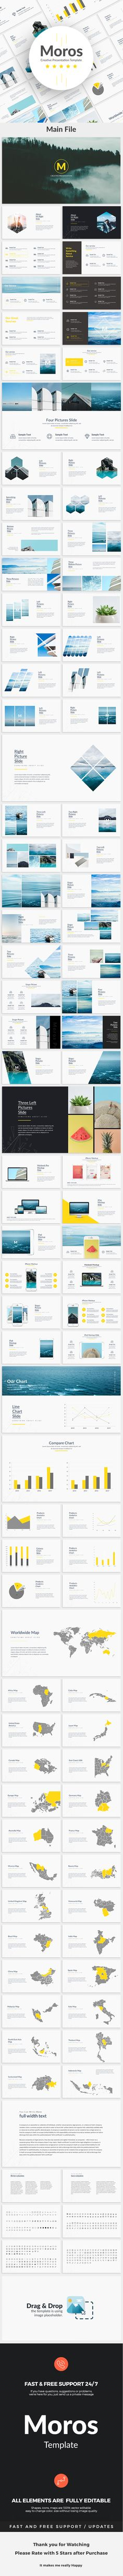 Moros - Creative Powerpoint Template - Creative PowerPoint Templates